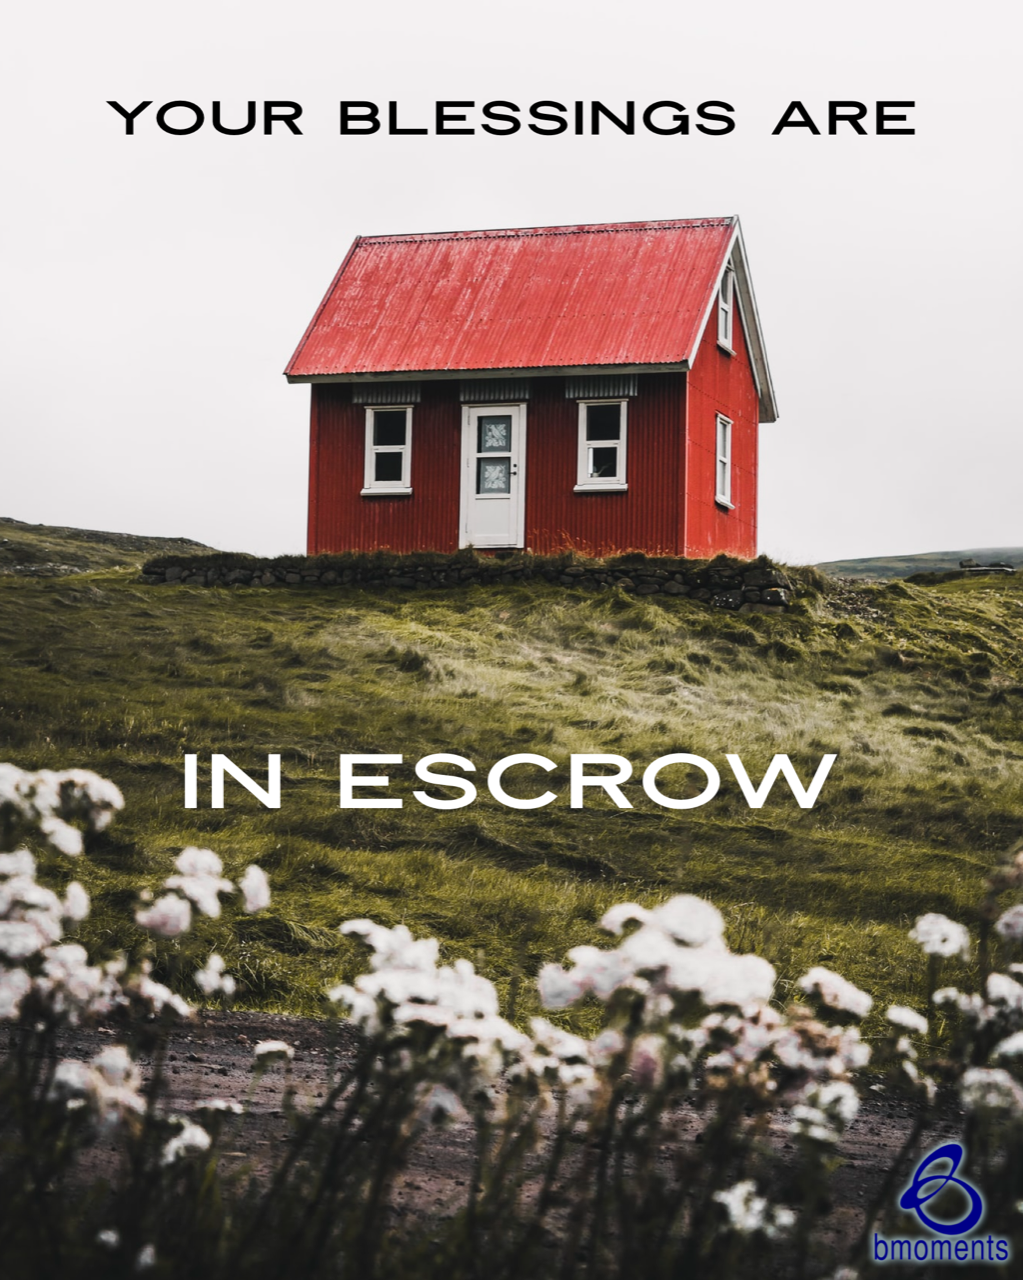 Be Encouraged: Your Blessings Are in Escrow